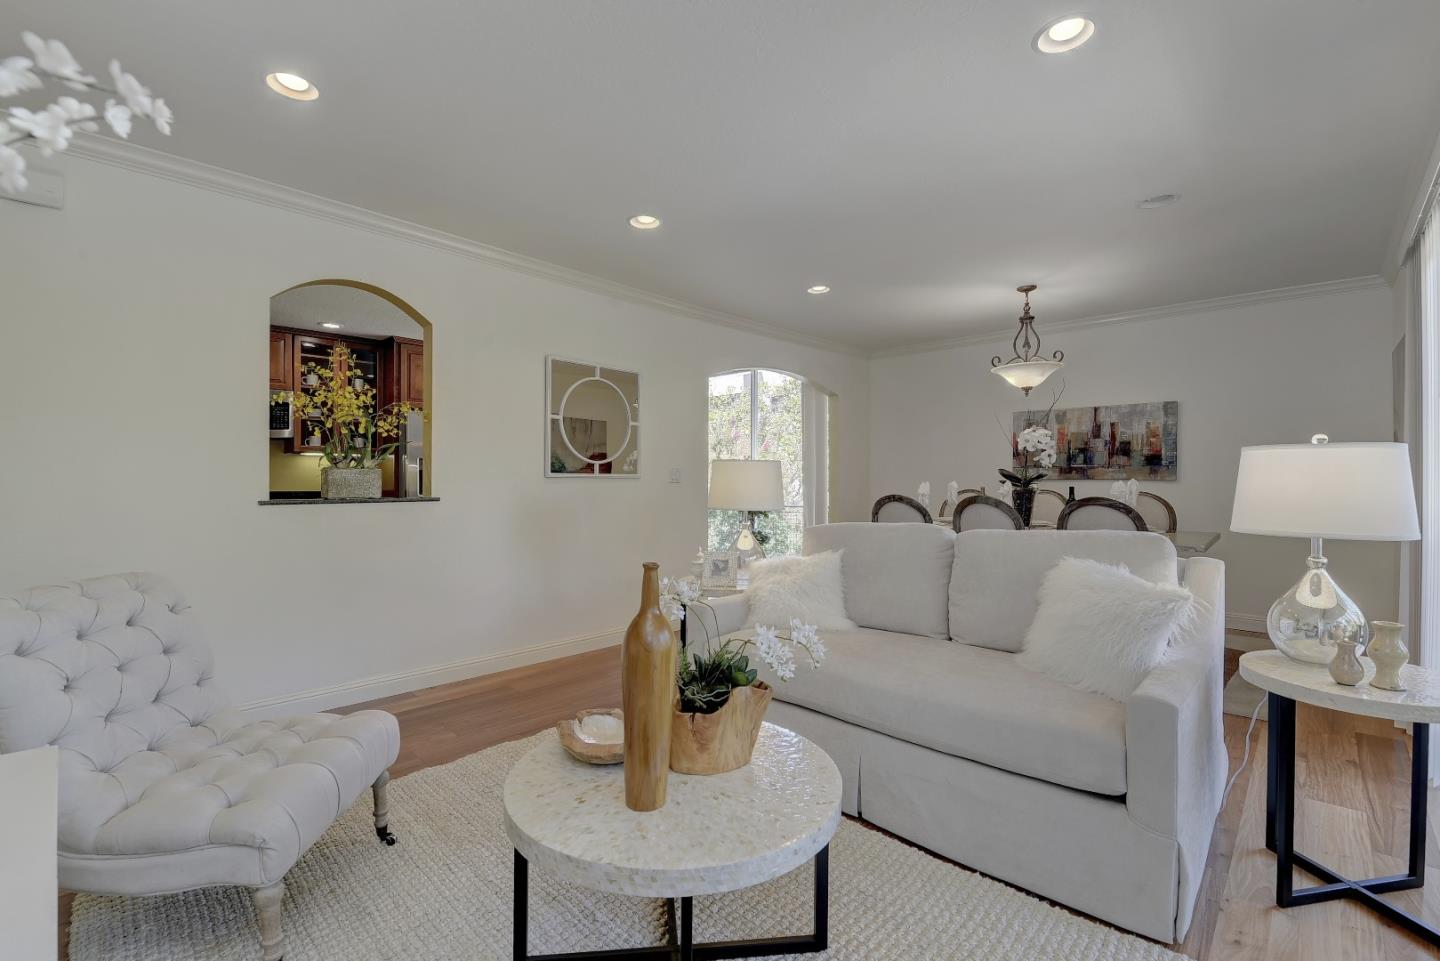 Additional photo for property listing at 425 Grant Avenue  Palo Alto, Kalifornien 94306 Vereinigte Staaten